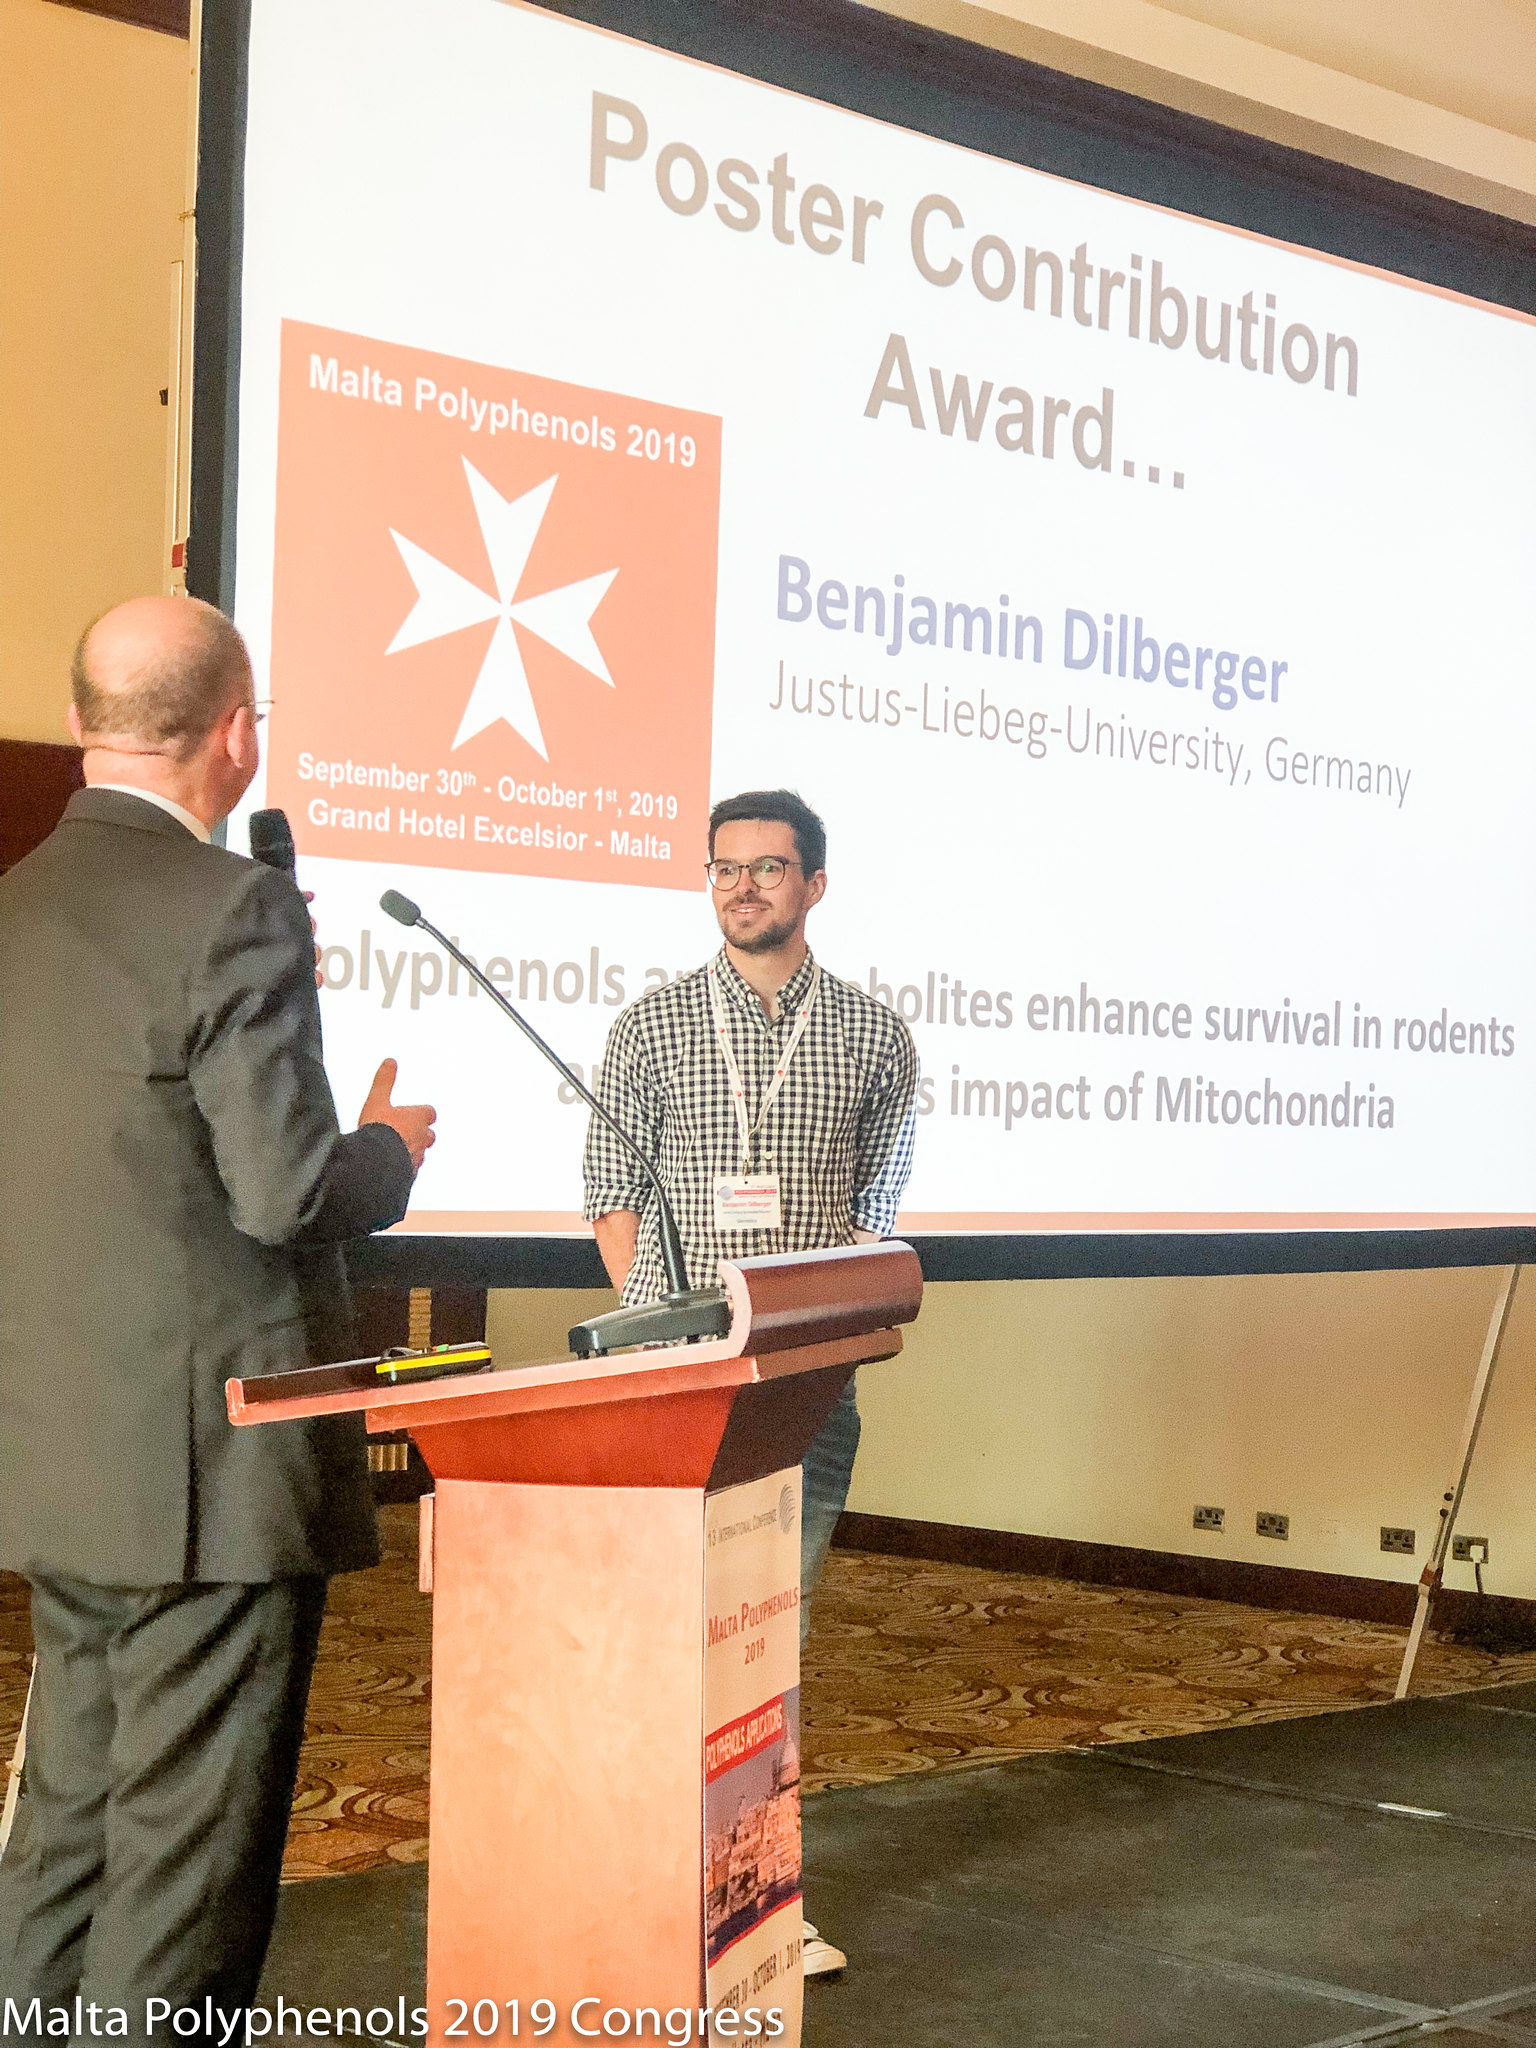 The Poster Contribution Award was discerned to Dr. Benjamin Dilberger